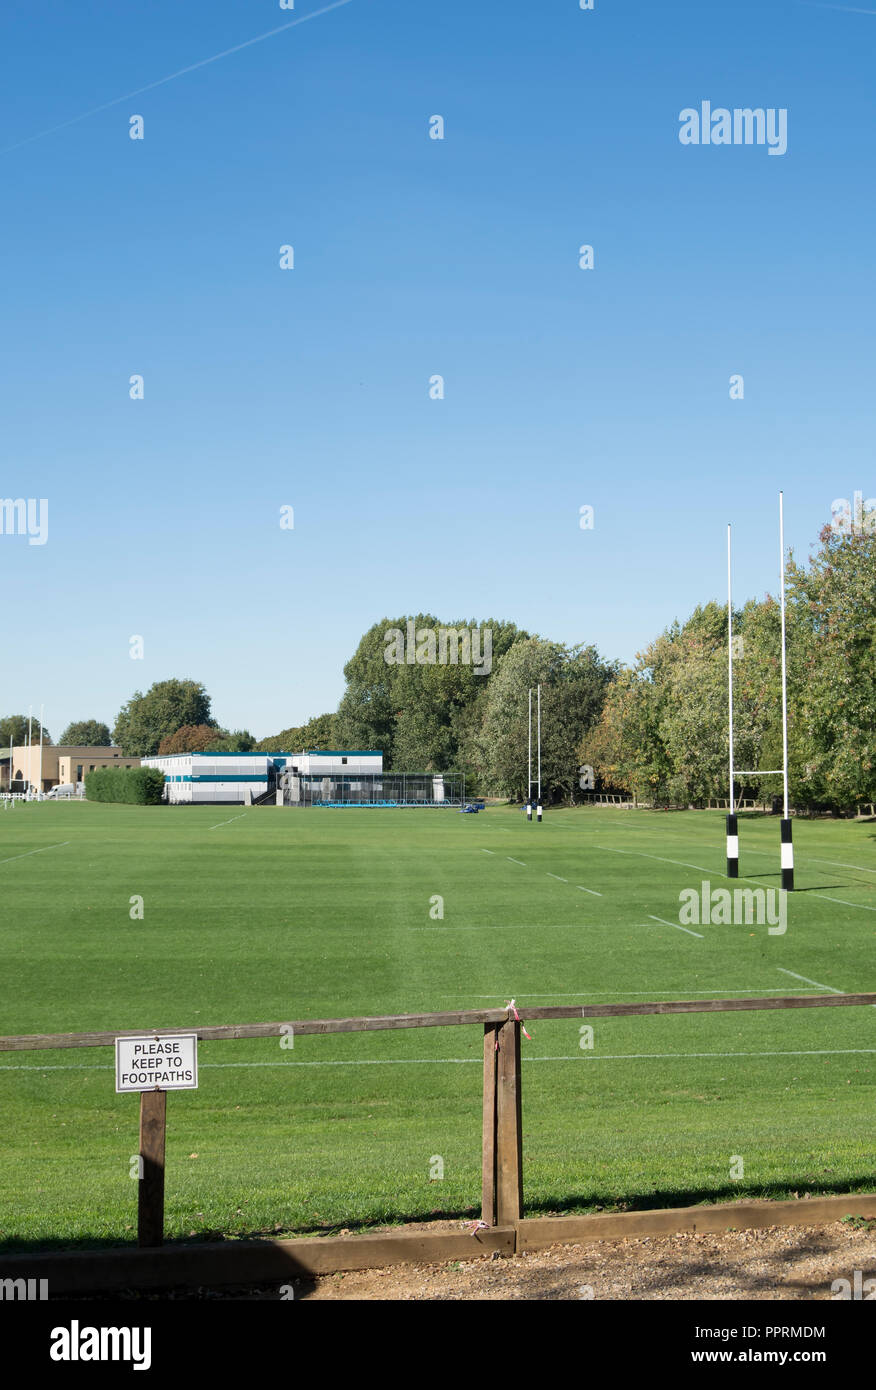 playing fields at st paul's school, barnes, london, england, with please keep to footpaths sign in foreground - Stock Image